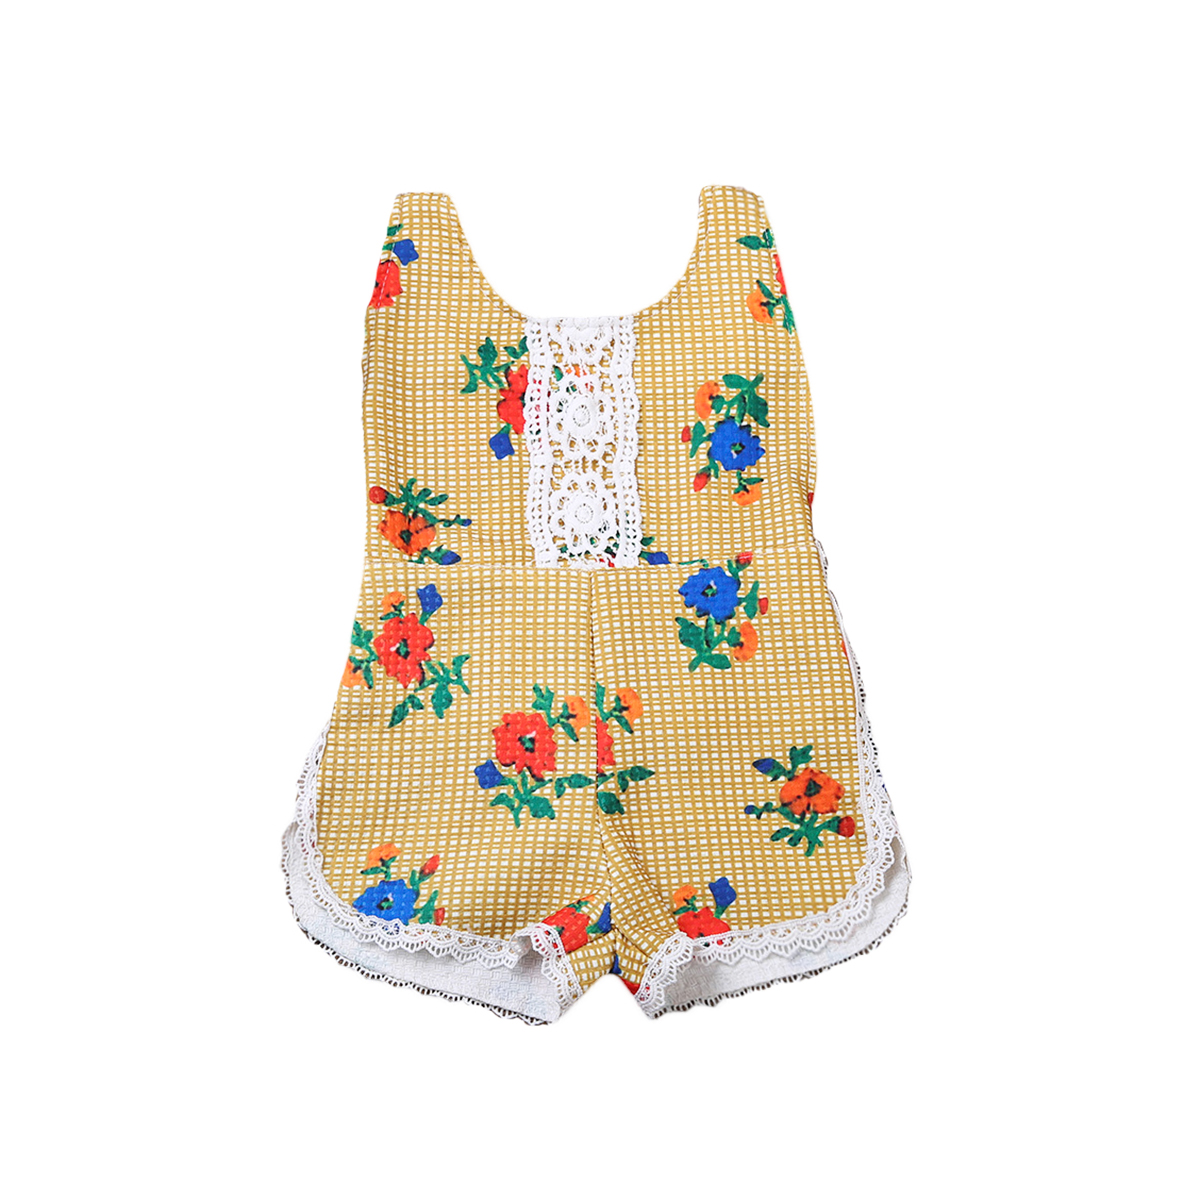 Toddler Newborn Infant Baby Girl Floral Romper Jumpsuit Outfits Summer Baby Girl Clothes Sunsuit Cotton Baby Onesie Outfit toddler newborn infant baby girl floral romper jumpsuit outfits summer baby girl clothes sunsuit cotton baby onesie outfit